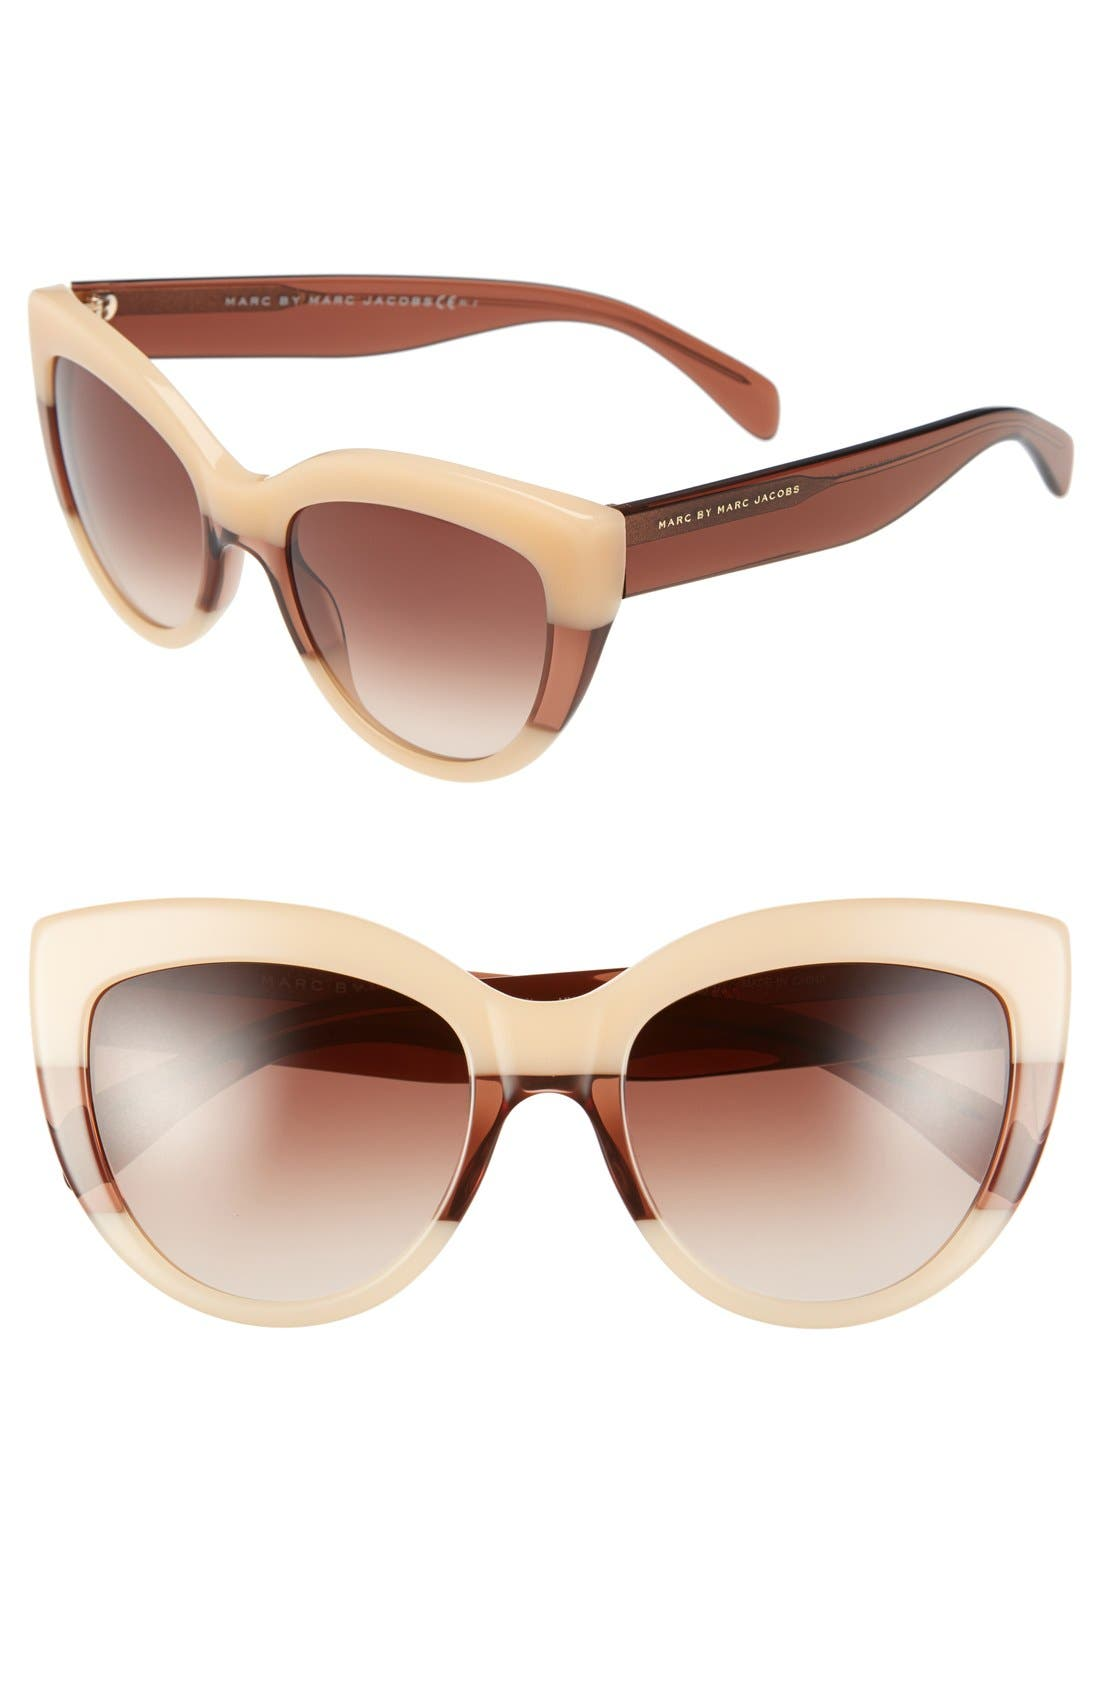 Alternate Image 1 Selected - MARC BY MARC JACOBS 53mm Cat Eye Sunglasses